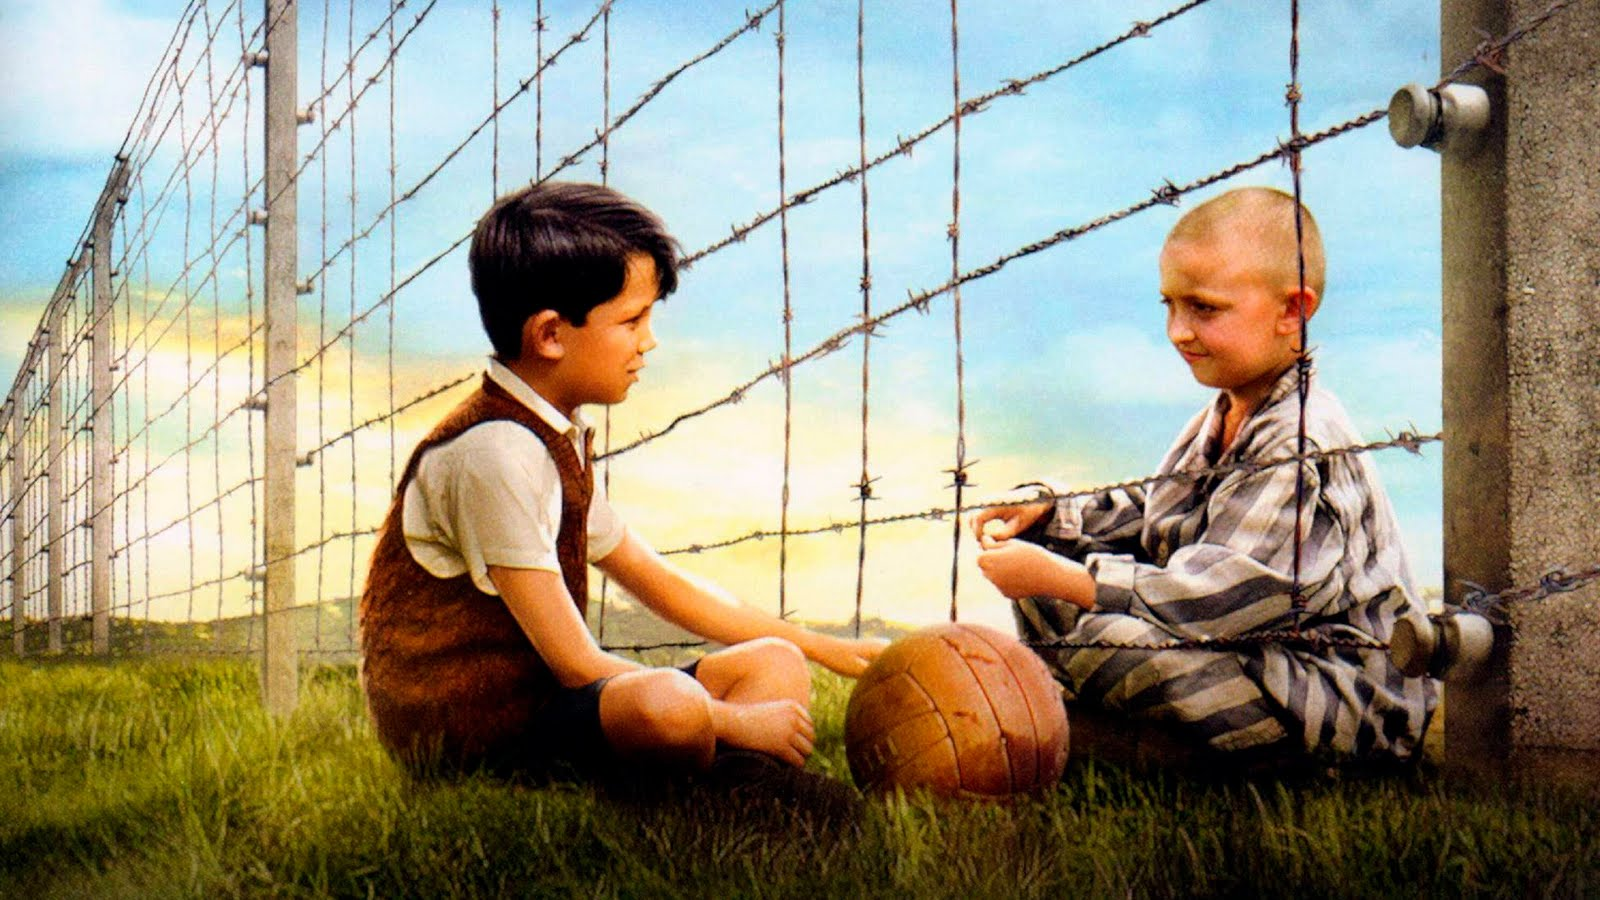 historicalfictionbookreviews4 the boy in the striped pajamas tom k bruno and shamuel at the fence